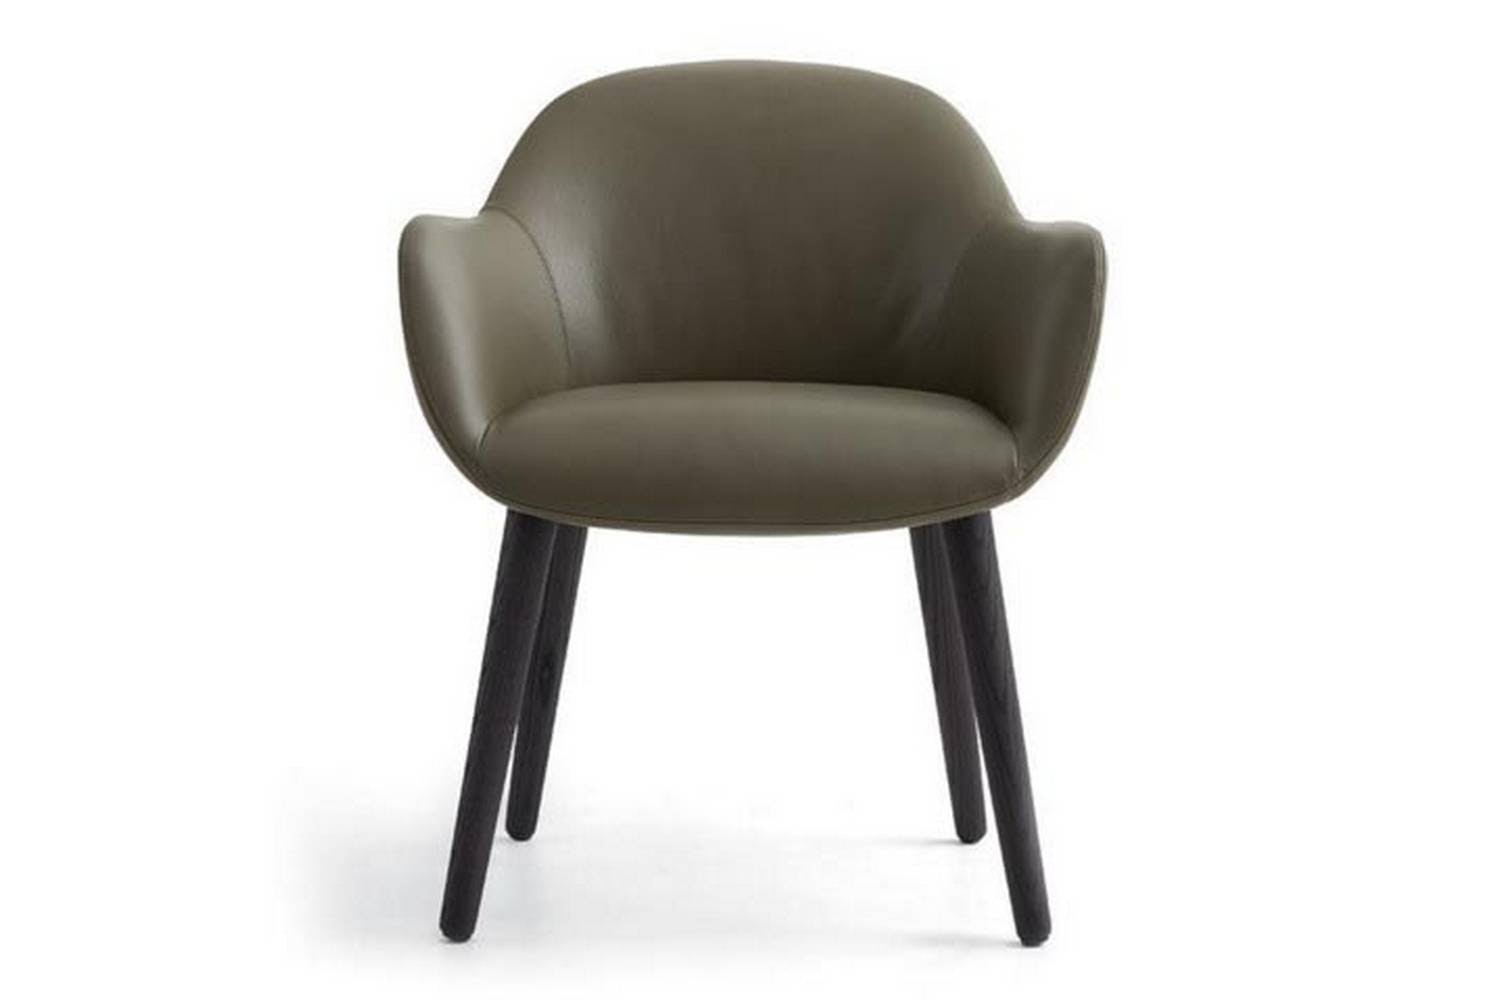 Mad Dining Chair with Arms by Marcel Wanders for Poliform